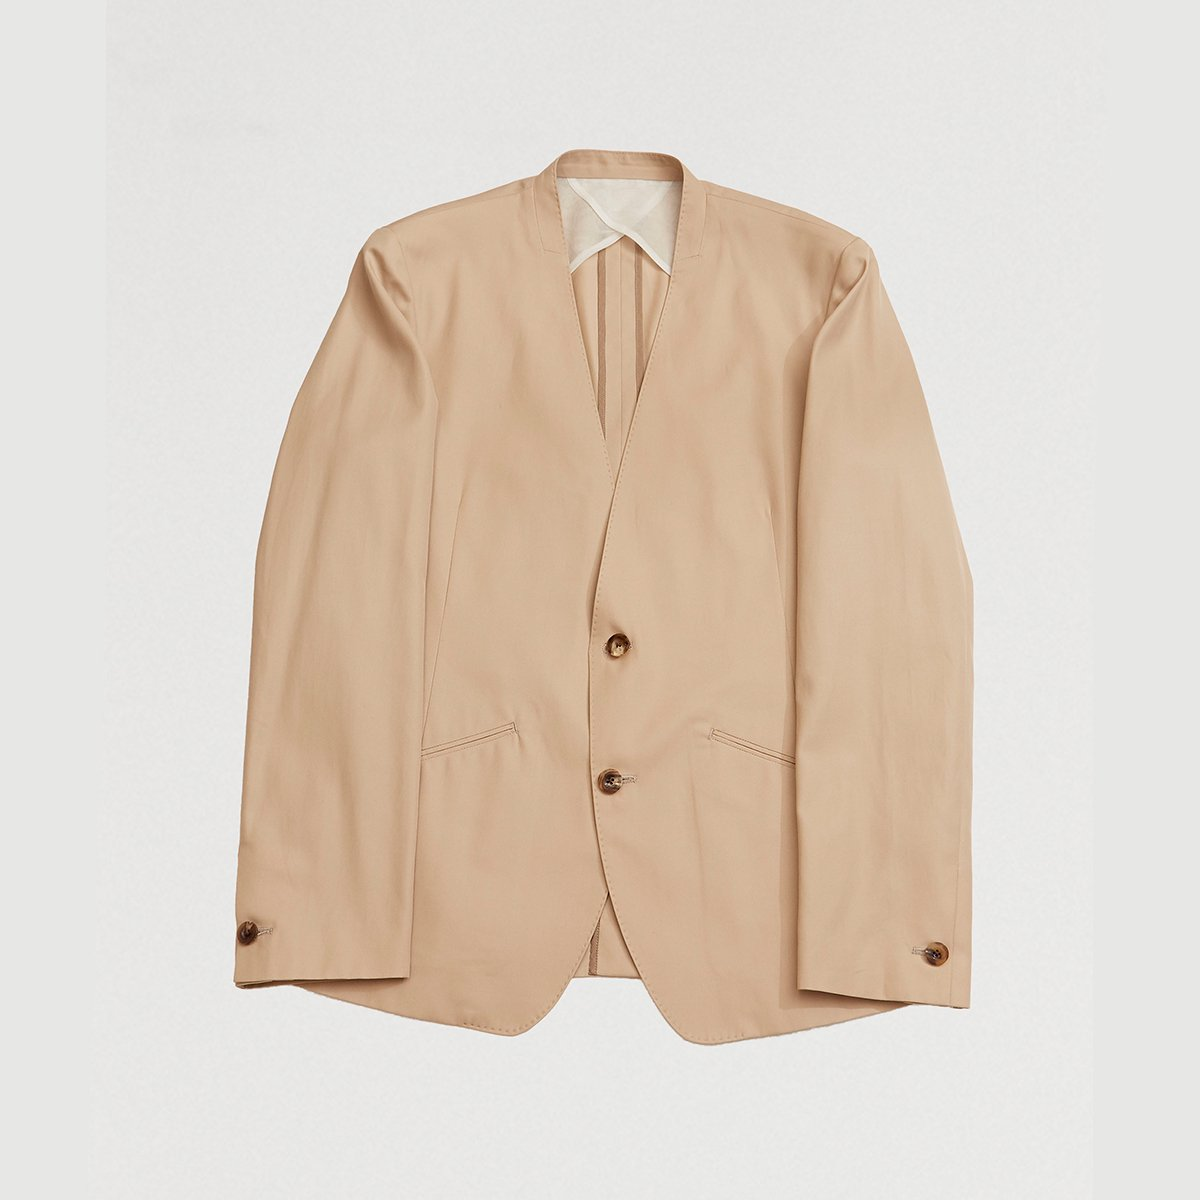 <img class='new_mark_img1' src='https://img.shop-pro.jp/img/new/icons5.gif' style='border:none;display:inline;margin:0px;padding:0px;width:auto;' />NO COLLAR JACKET / BEIGE